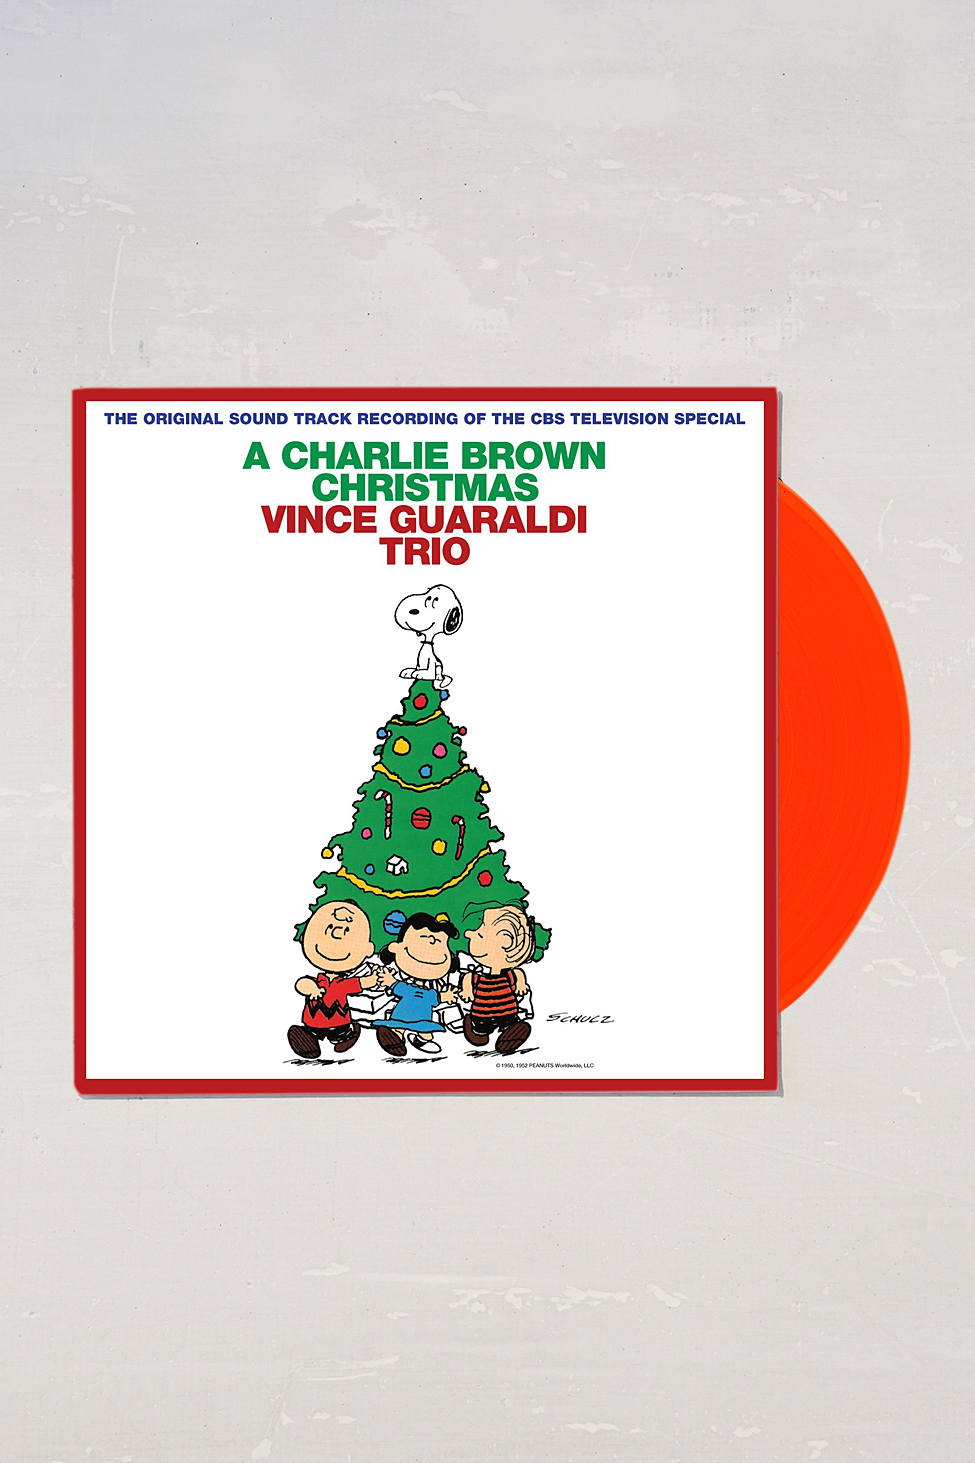 Charlie Brown Christmas — Latest News, Images and Photos — CrypticImages